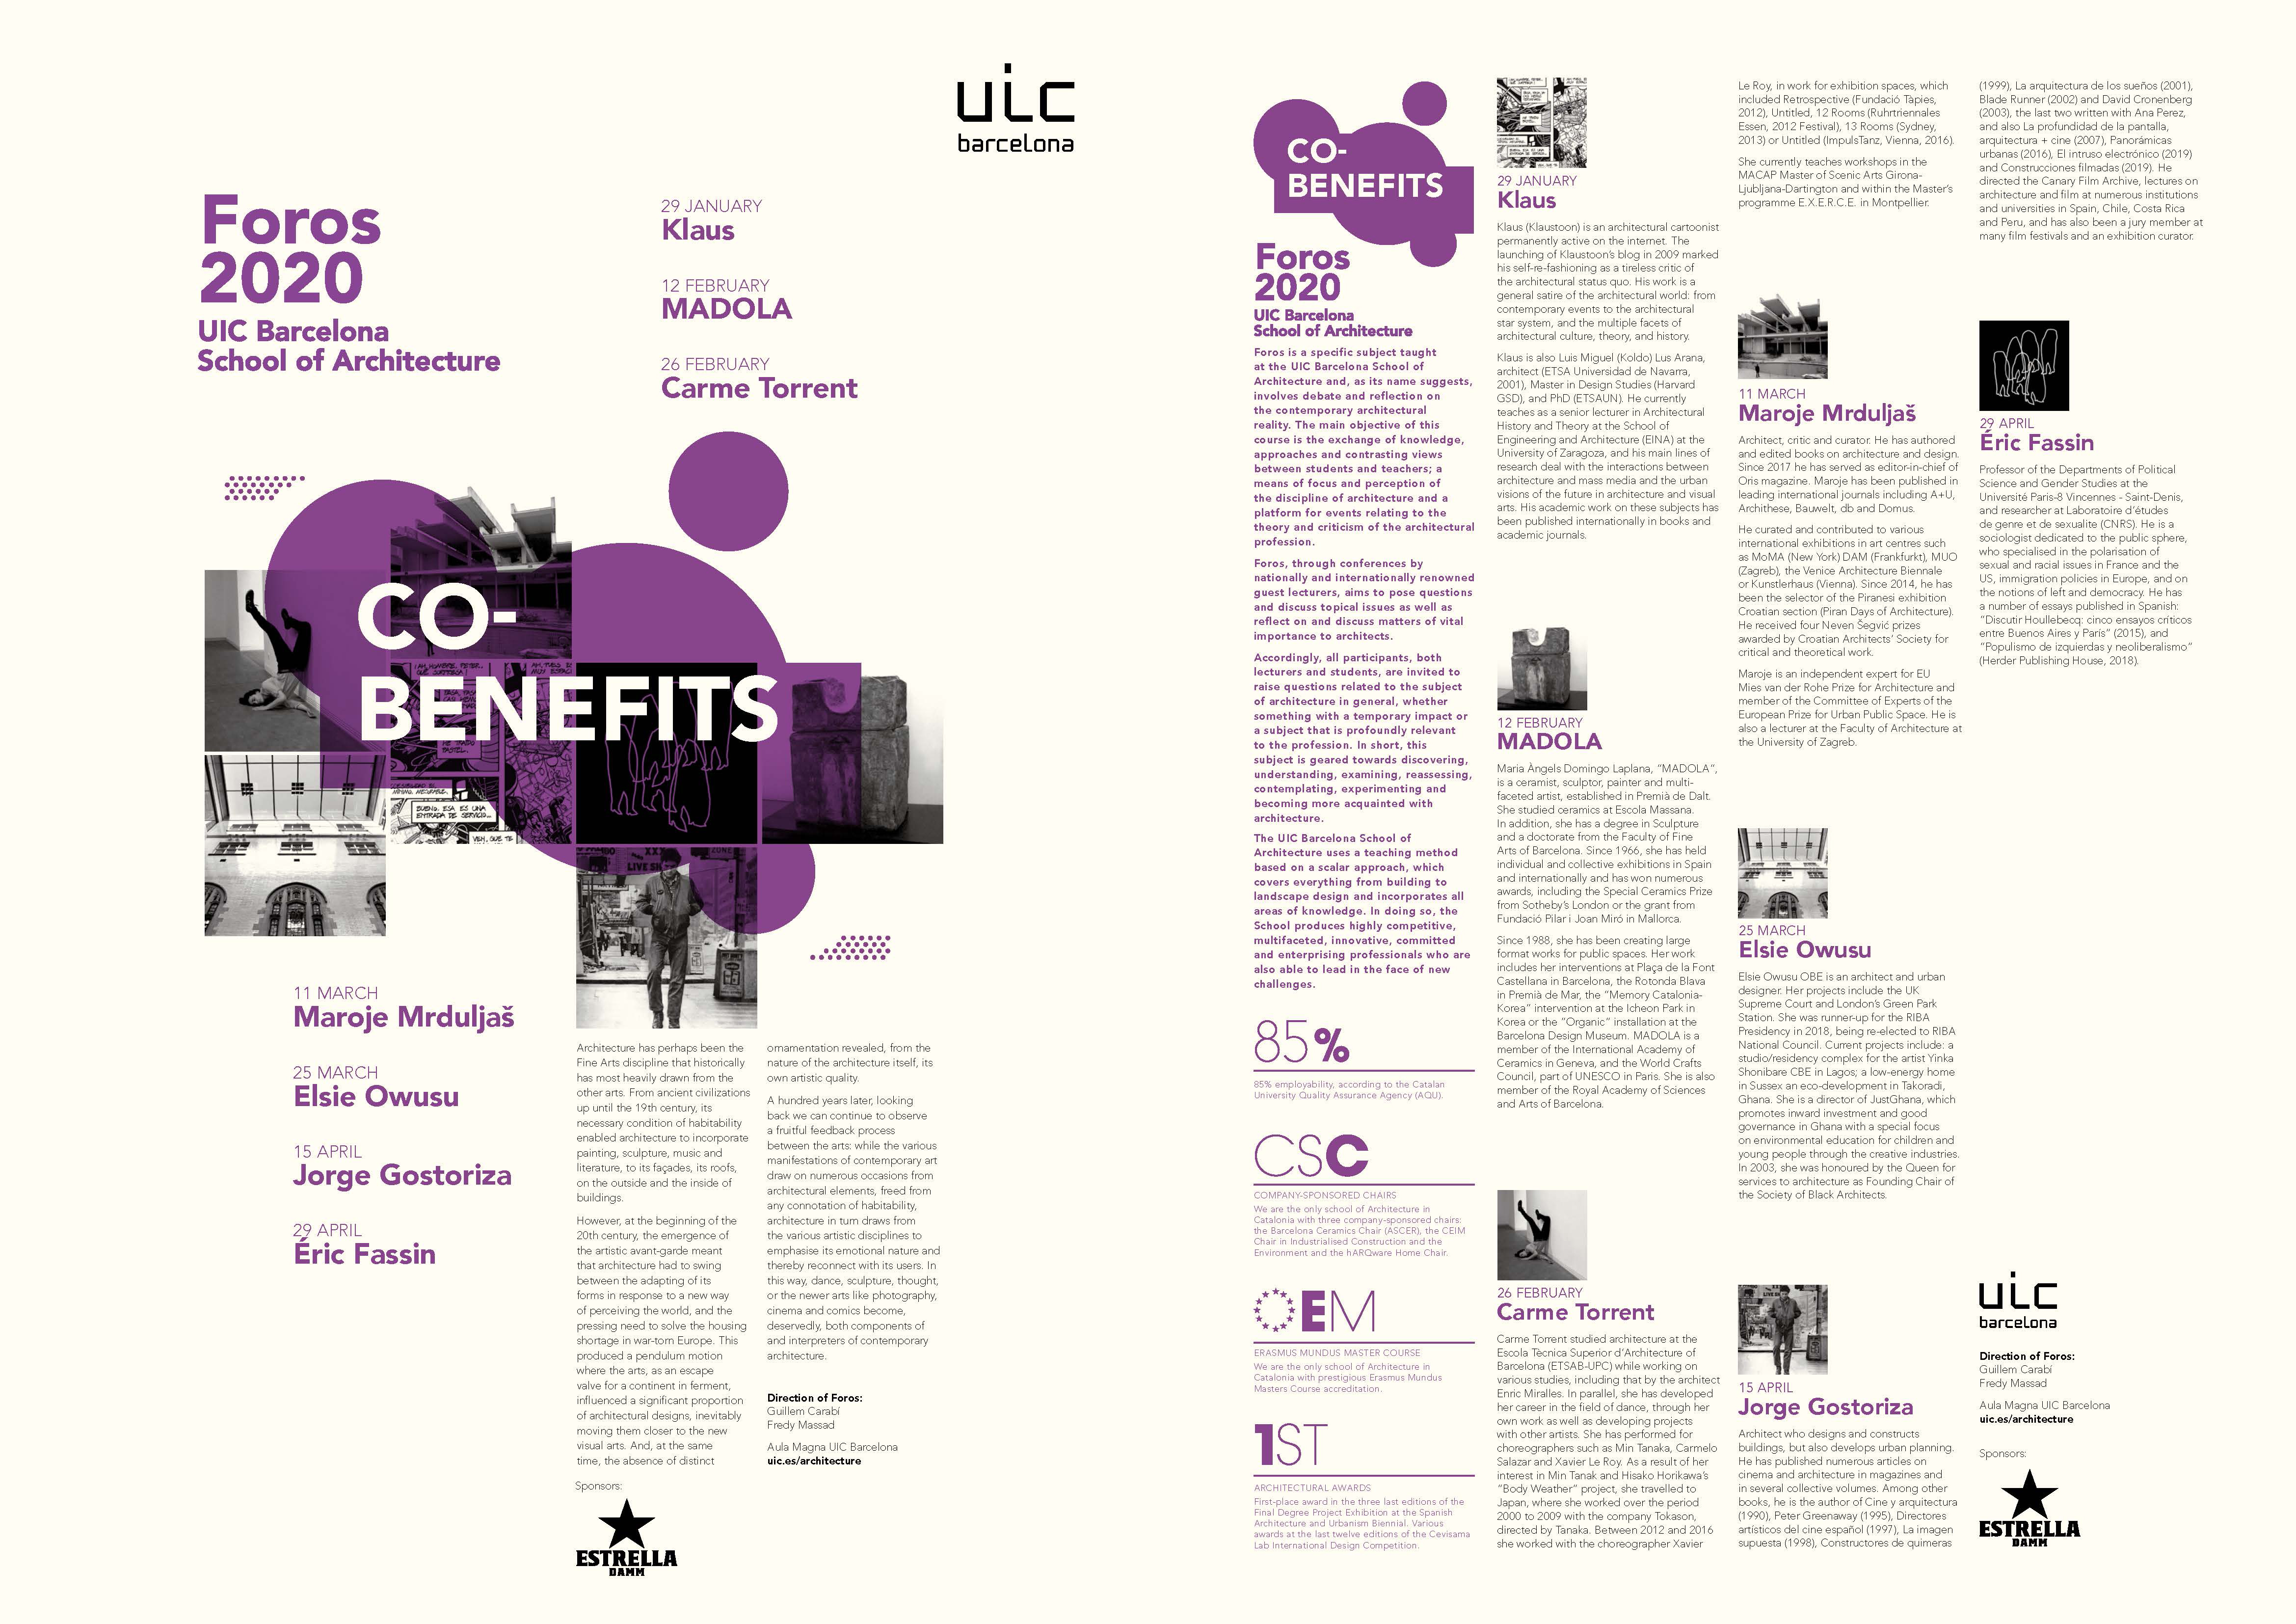 019_Cartell_A3_Foros_Co-Benefits_Lila_2014_Page_1-2